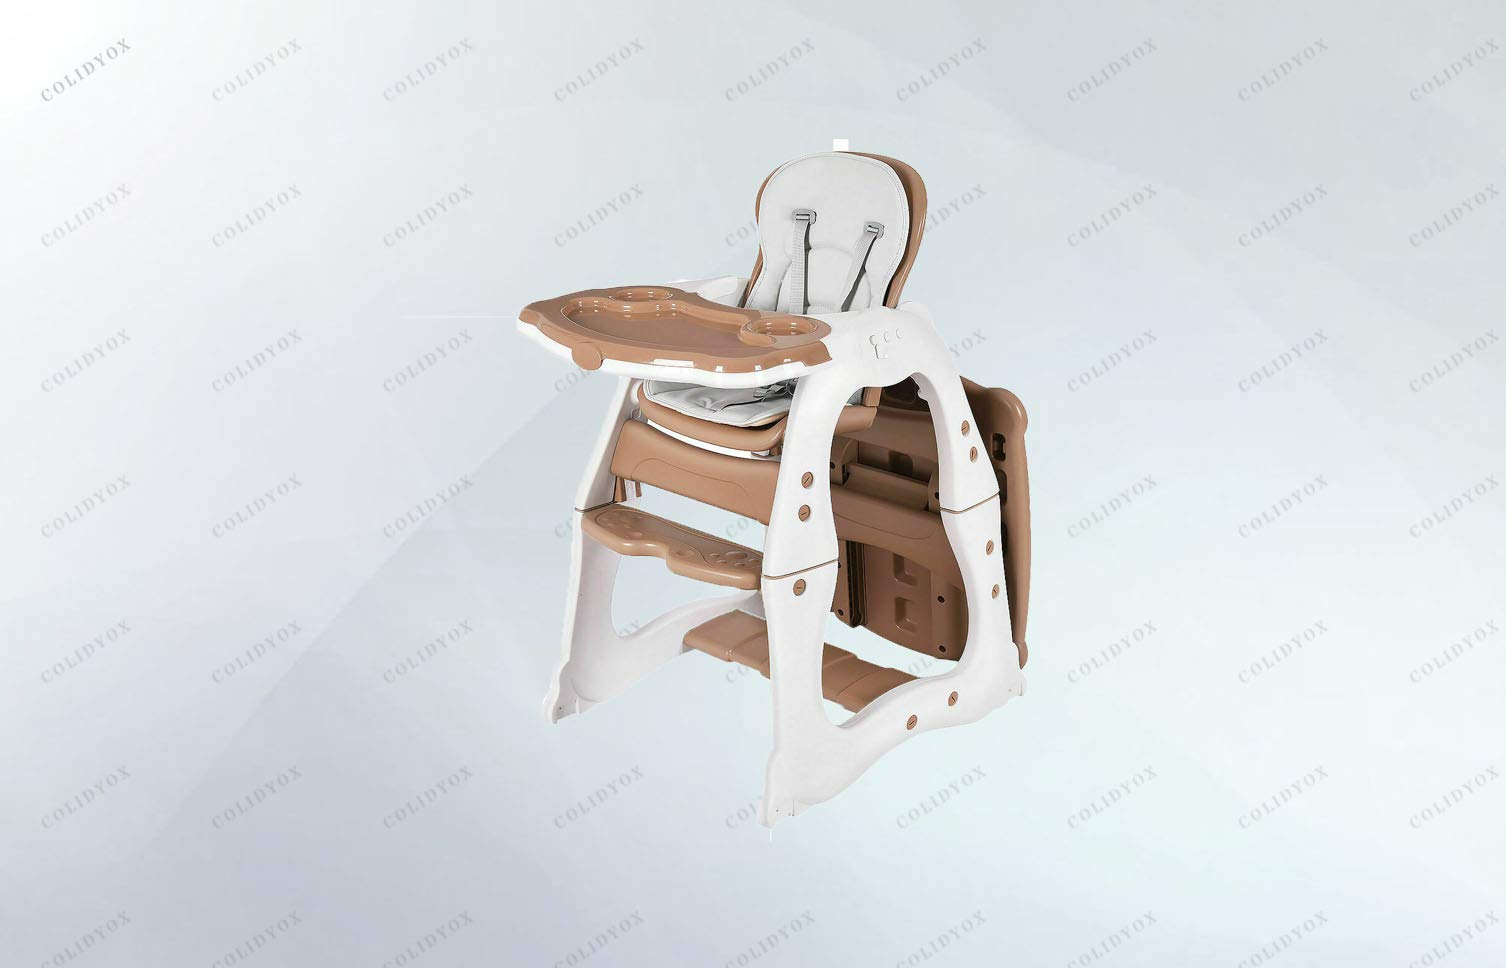 COLIBROX>>Multi-Functional Baby highchair,Removable, Washable seat pad,for use from 6 Months,Removable Tray Includes Two Cup Holders and Large Main Compartment, 5 Point Harness System.